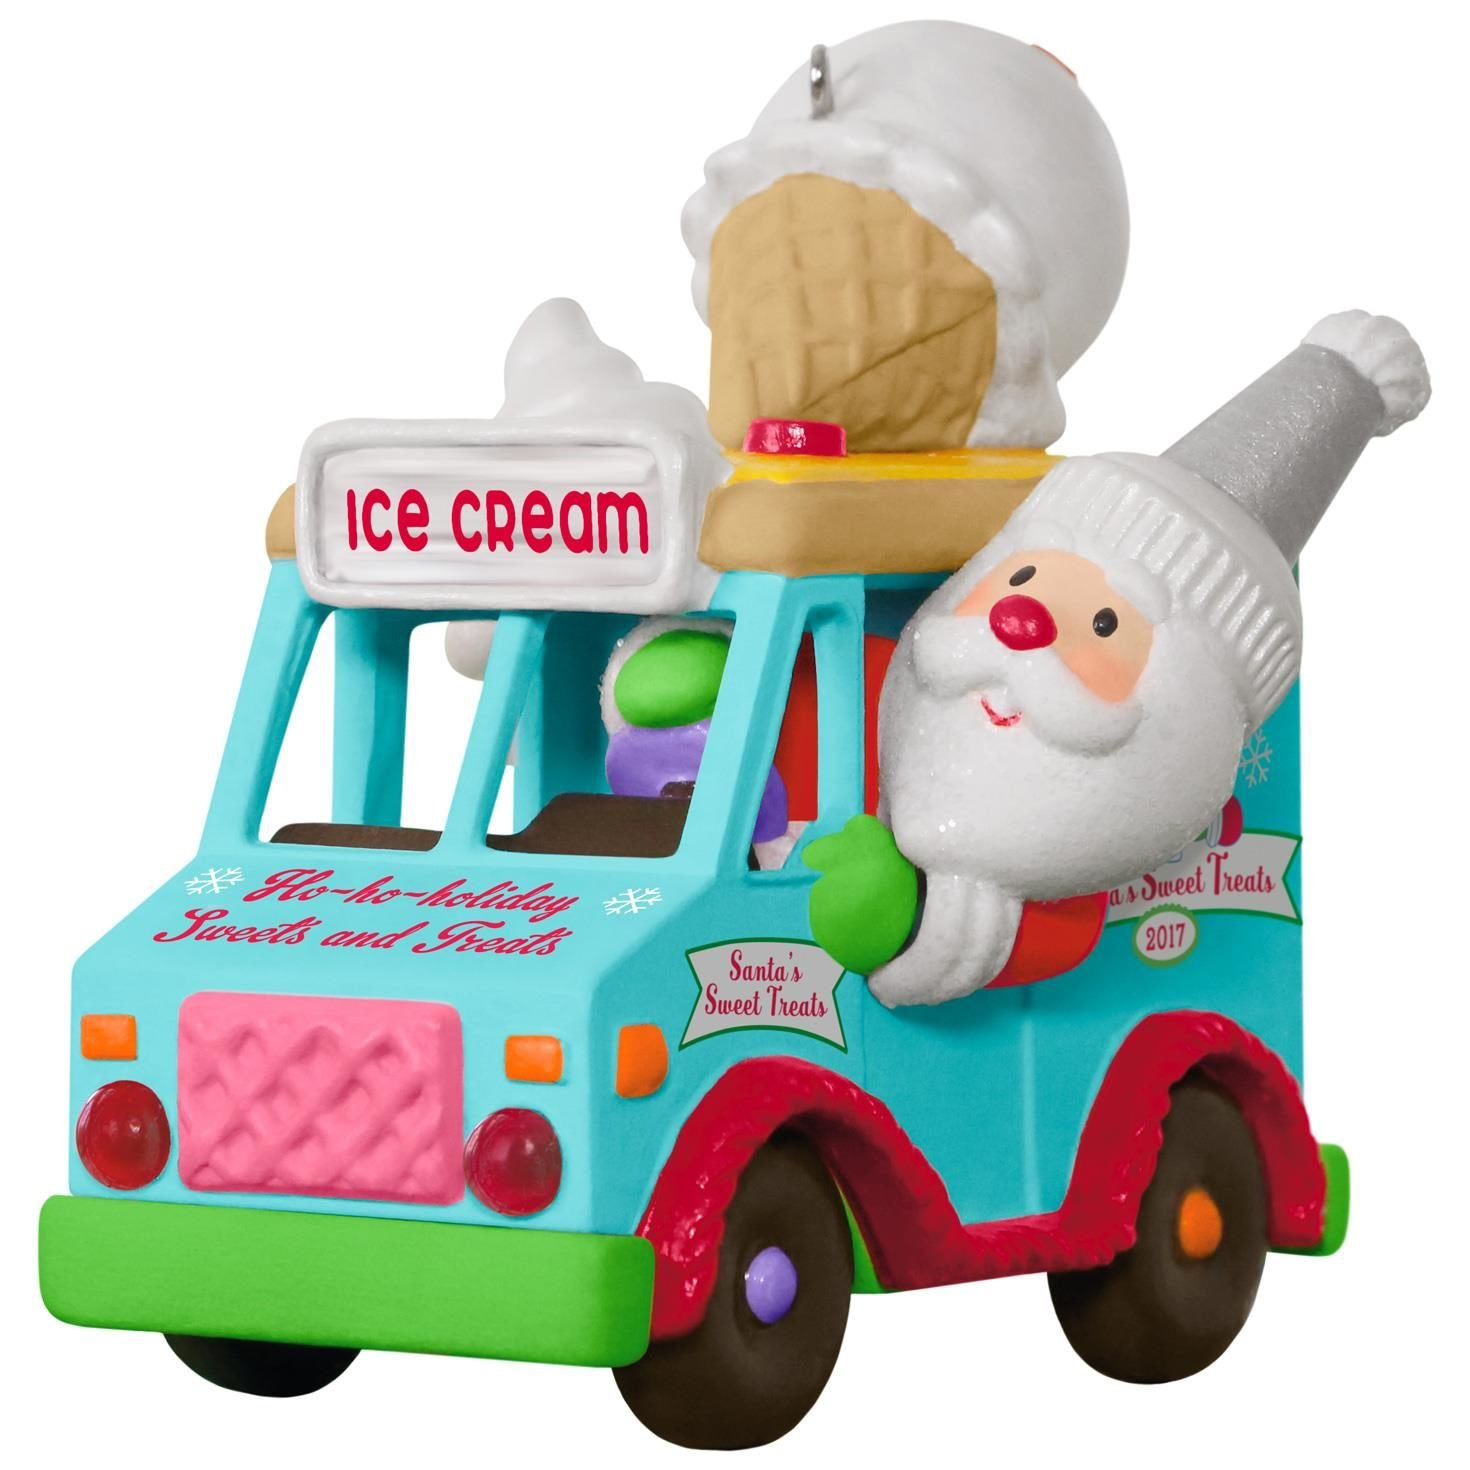 Hallmark Keepsake 2017 Santa's Sweet Surprise Ice Cream Truck Light and Music Christmas Ornament